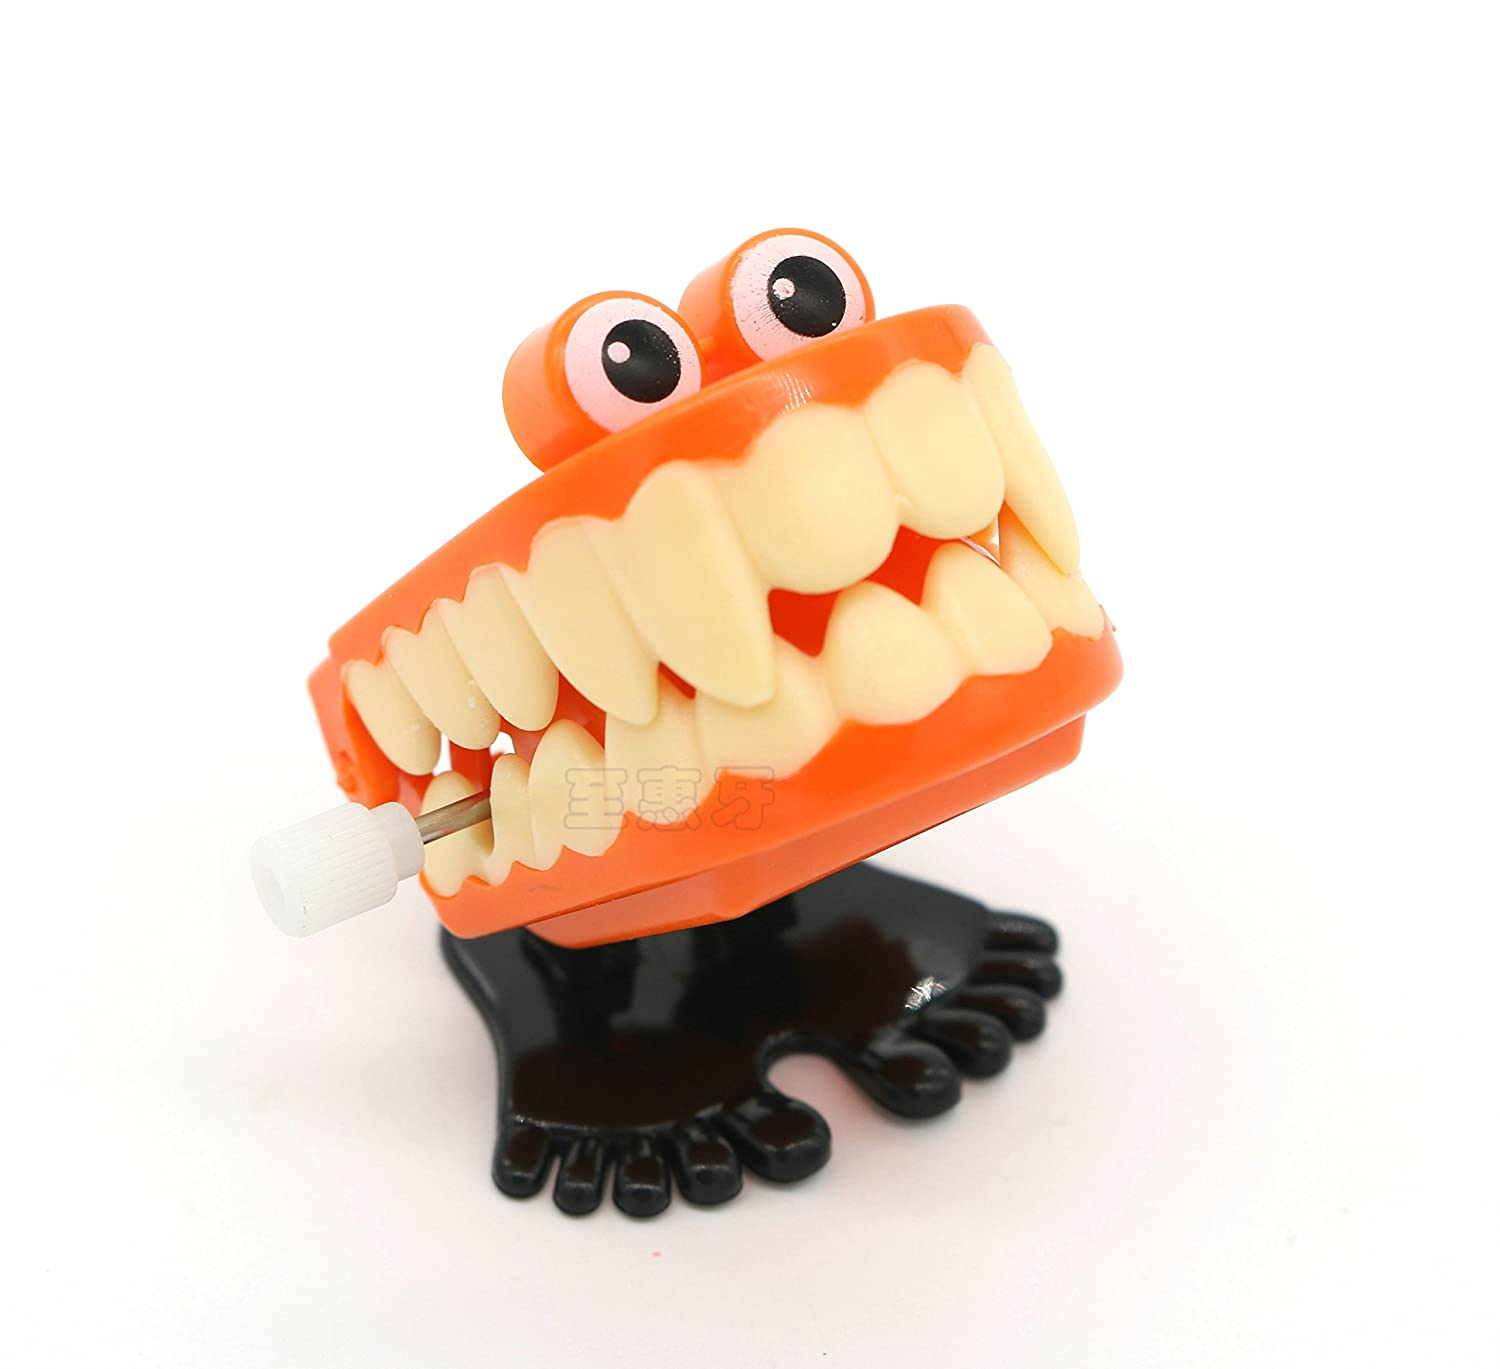 7pcs)) Dental Clinic Gift Present for Kids Dental Decoration Adorable Jumping Teeth